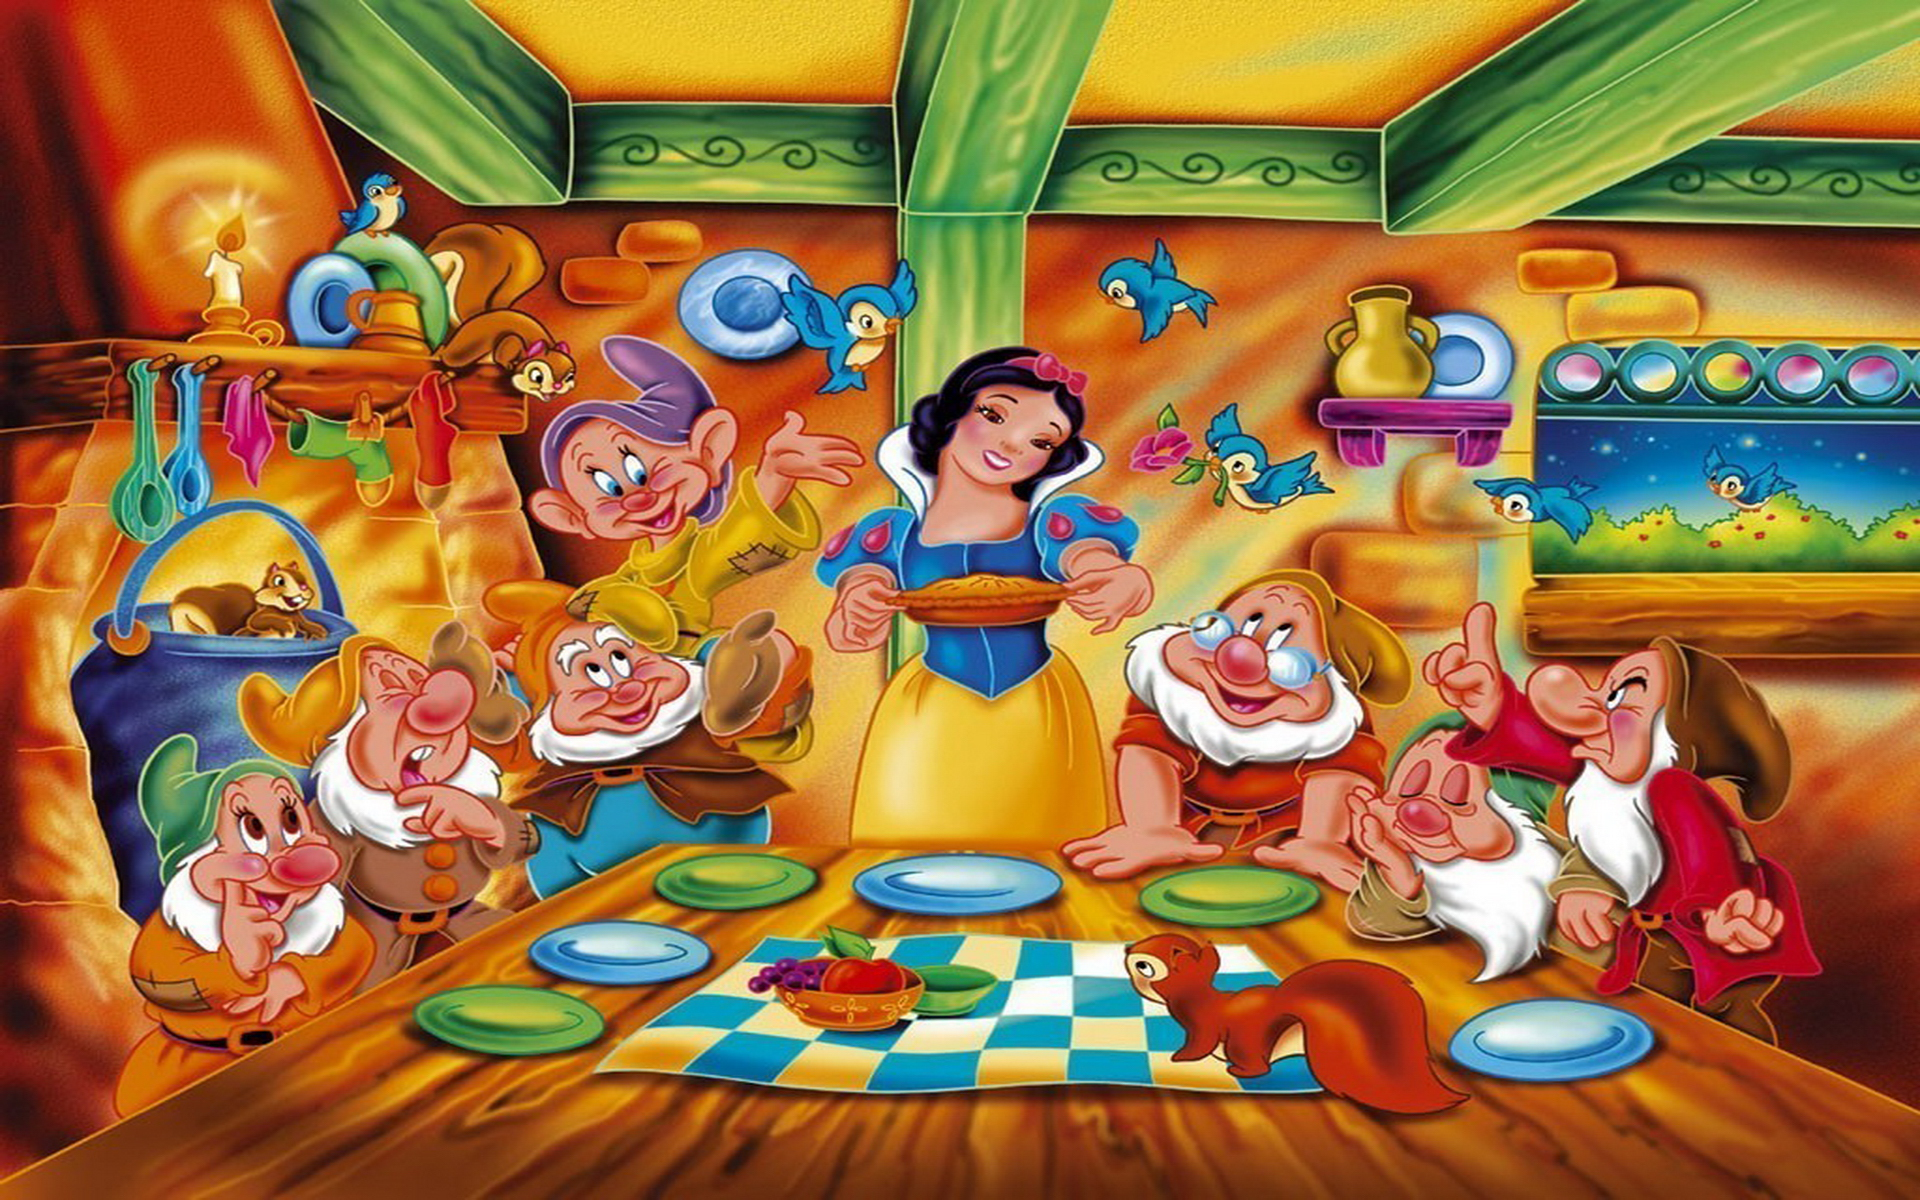 snow white and the seven dwarfs hd wallpaper background image